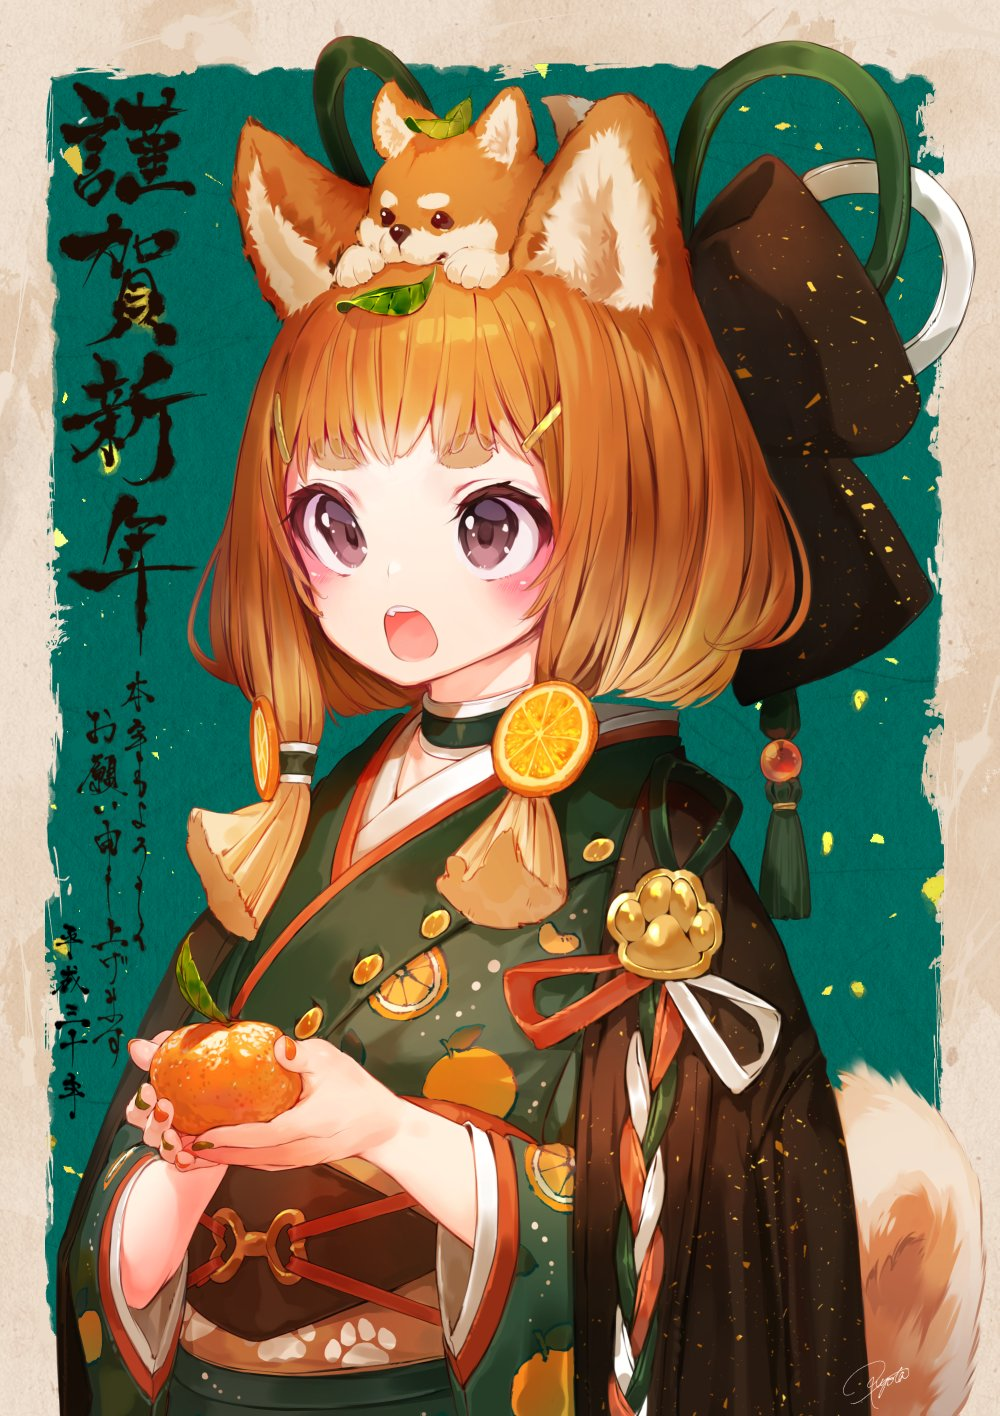 1girl animal animal_ears animal_on_head bangs black_bow black_eyes blush bow brown_border choker commentary curled_tail dog dog_ears dog_girl dog_tail eyebrows_visible_through_hair fang food food_print food_themed_hair_ornament fruit green_background green_choker green_kimono green_nails green_ribbon hair_bow hair_ornament hair_ribbon hair_tubes hairclip hakura_kusa hanten_(clothes) happy_new_year highres hikimayu holding holding_food holding_fruit japanese_clothes kimono leaf leaf_on_head long_sleeves looking_away looking_up mandarin_orange multicolored multicolored_nail_polish nail_polish new_year obi on_head open_mouth orange orange_hair_ornament orange_nails orange_print orange_slice original outside_border paw_print print_kimono print_obi puppy red_ribbon ribbon sash shiba_inu shiny shiny_hair short_hair_with_long_locks signature tail upper_body white_ribbon year_of_the_dog